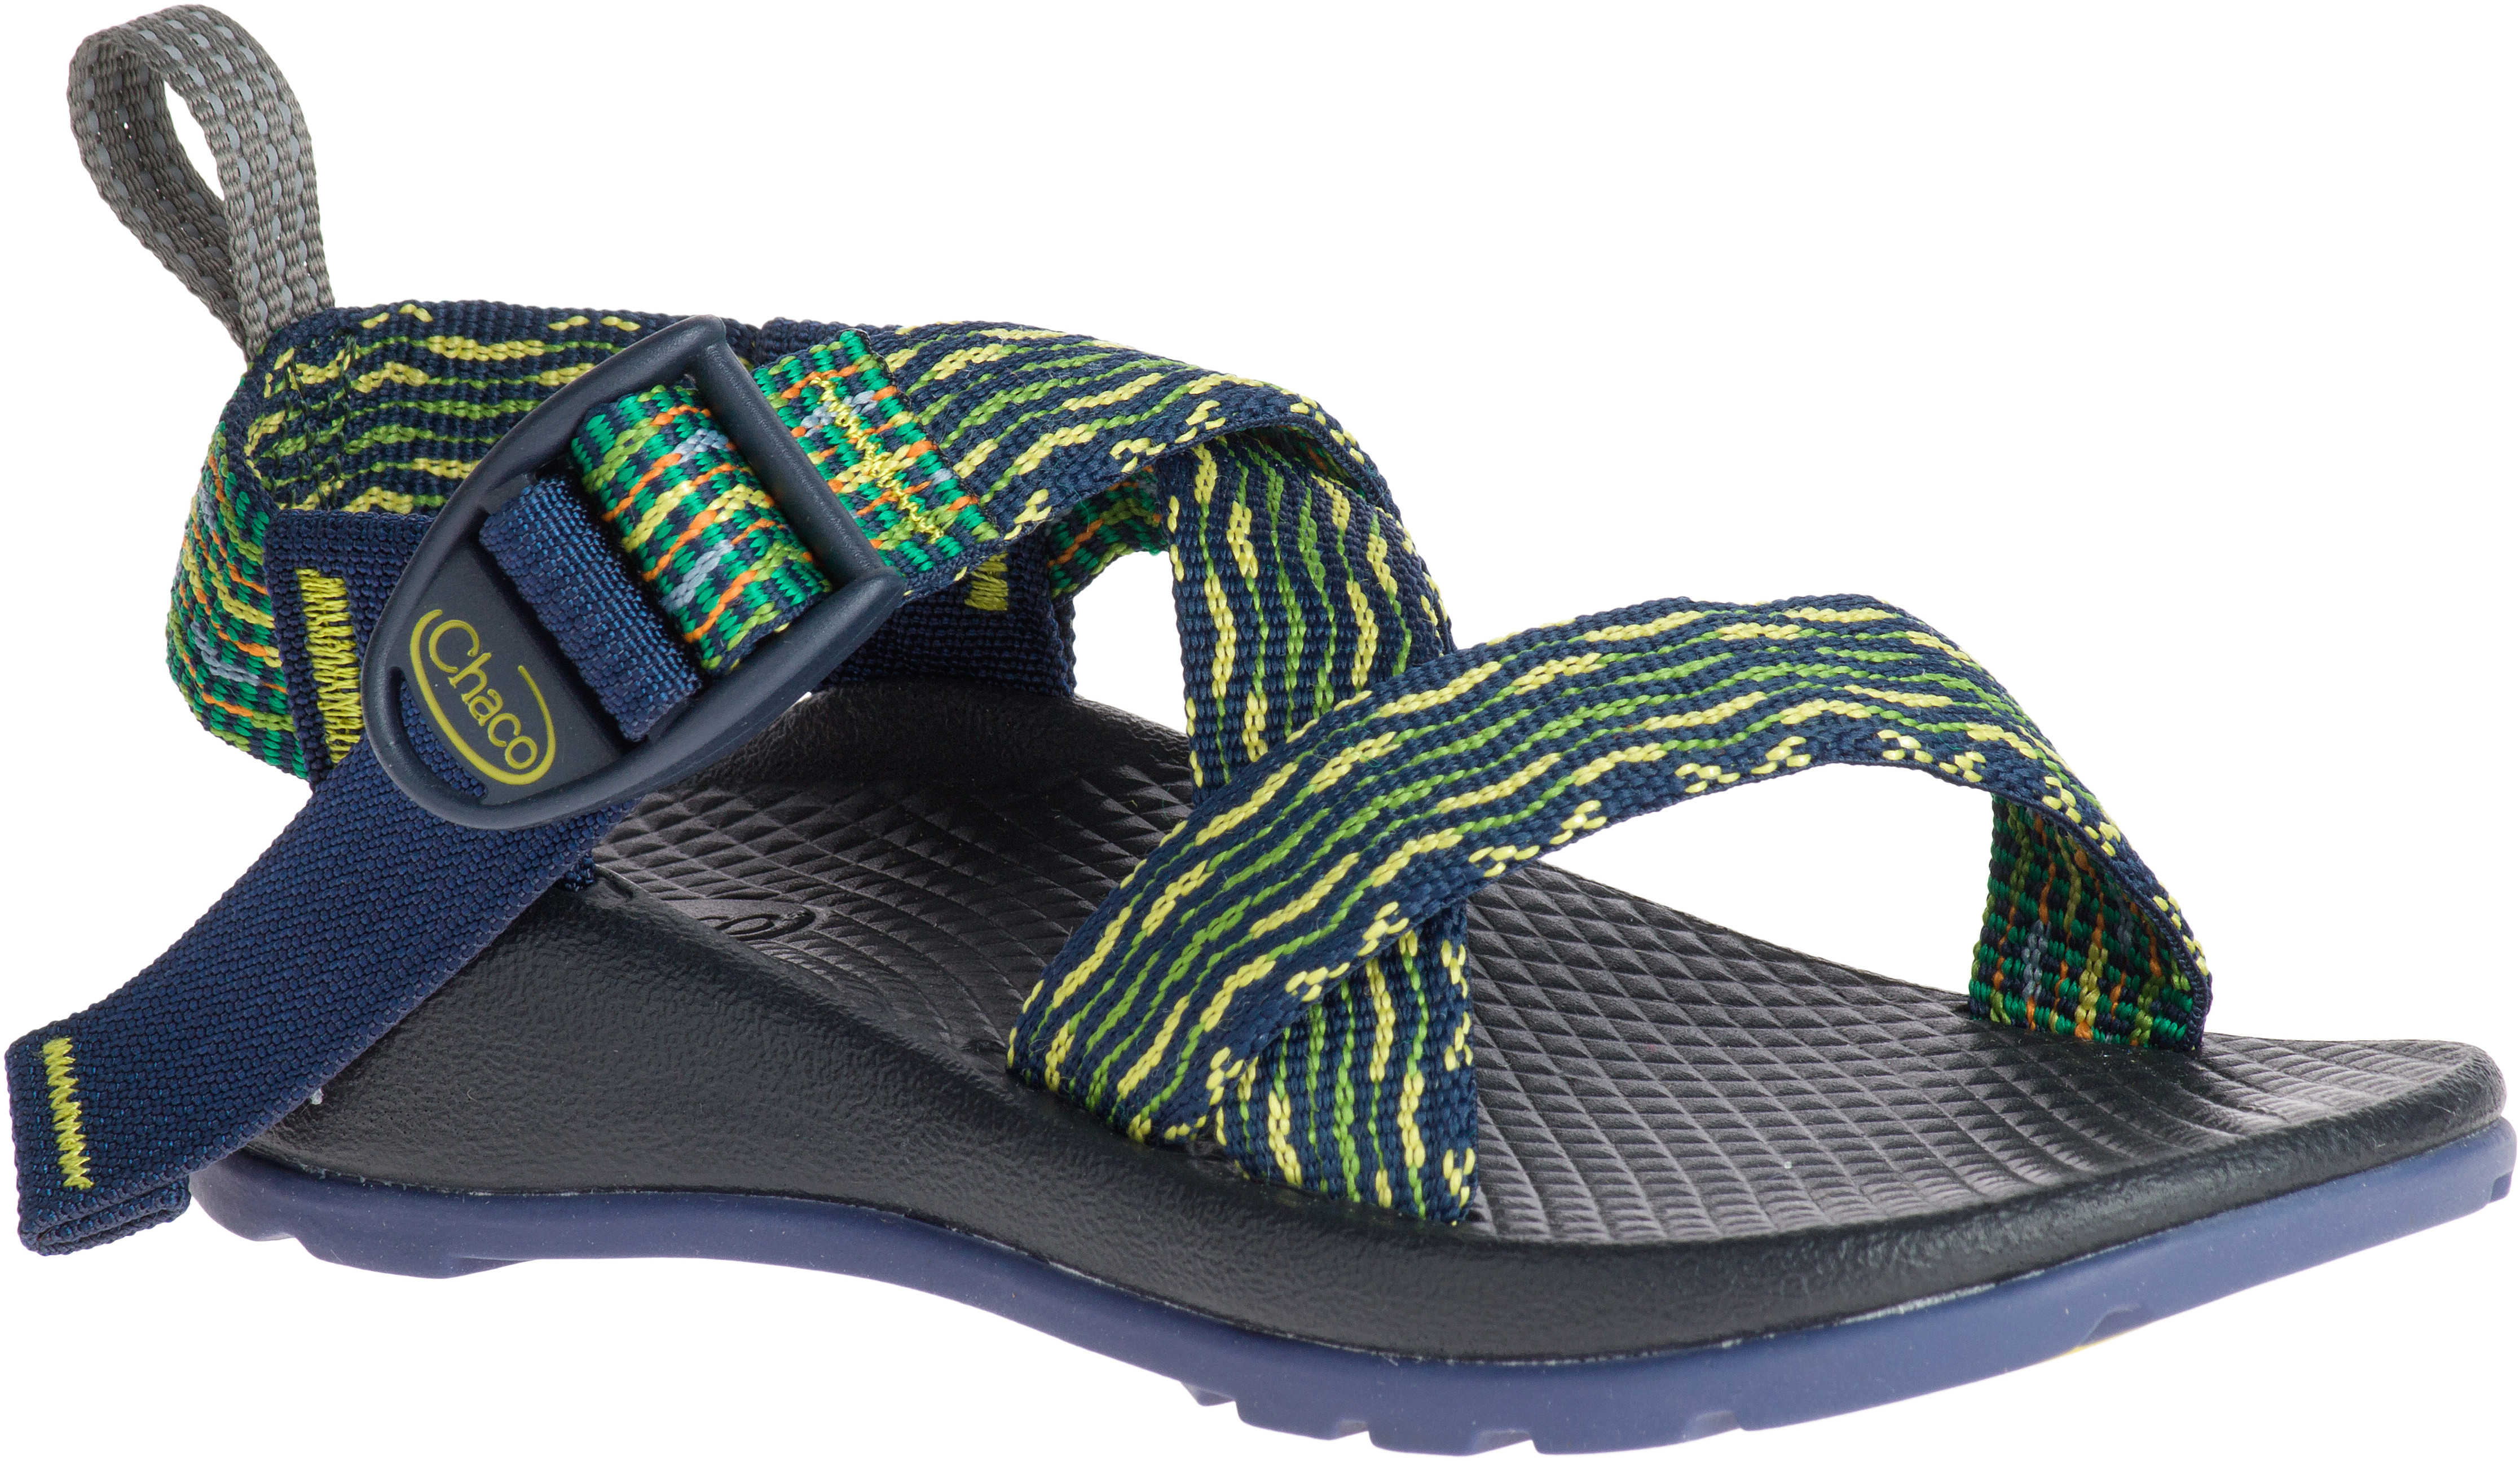 880108aef93a Chaco Z1 EcoTread Sandal - Youth